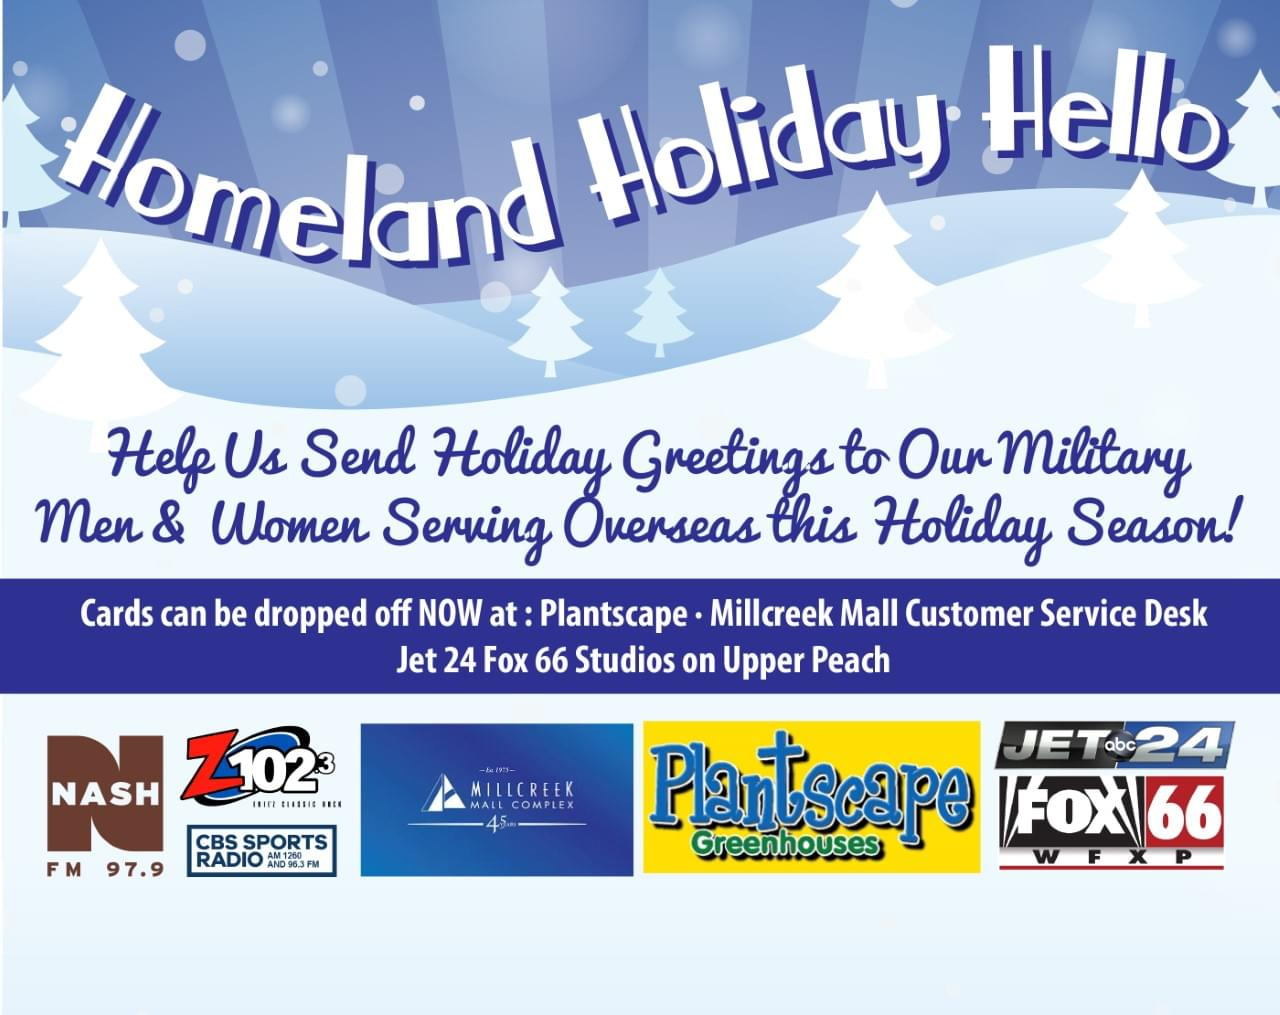 Support our Troops with the Homeland Holiday Hello!